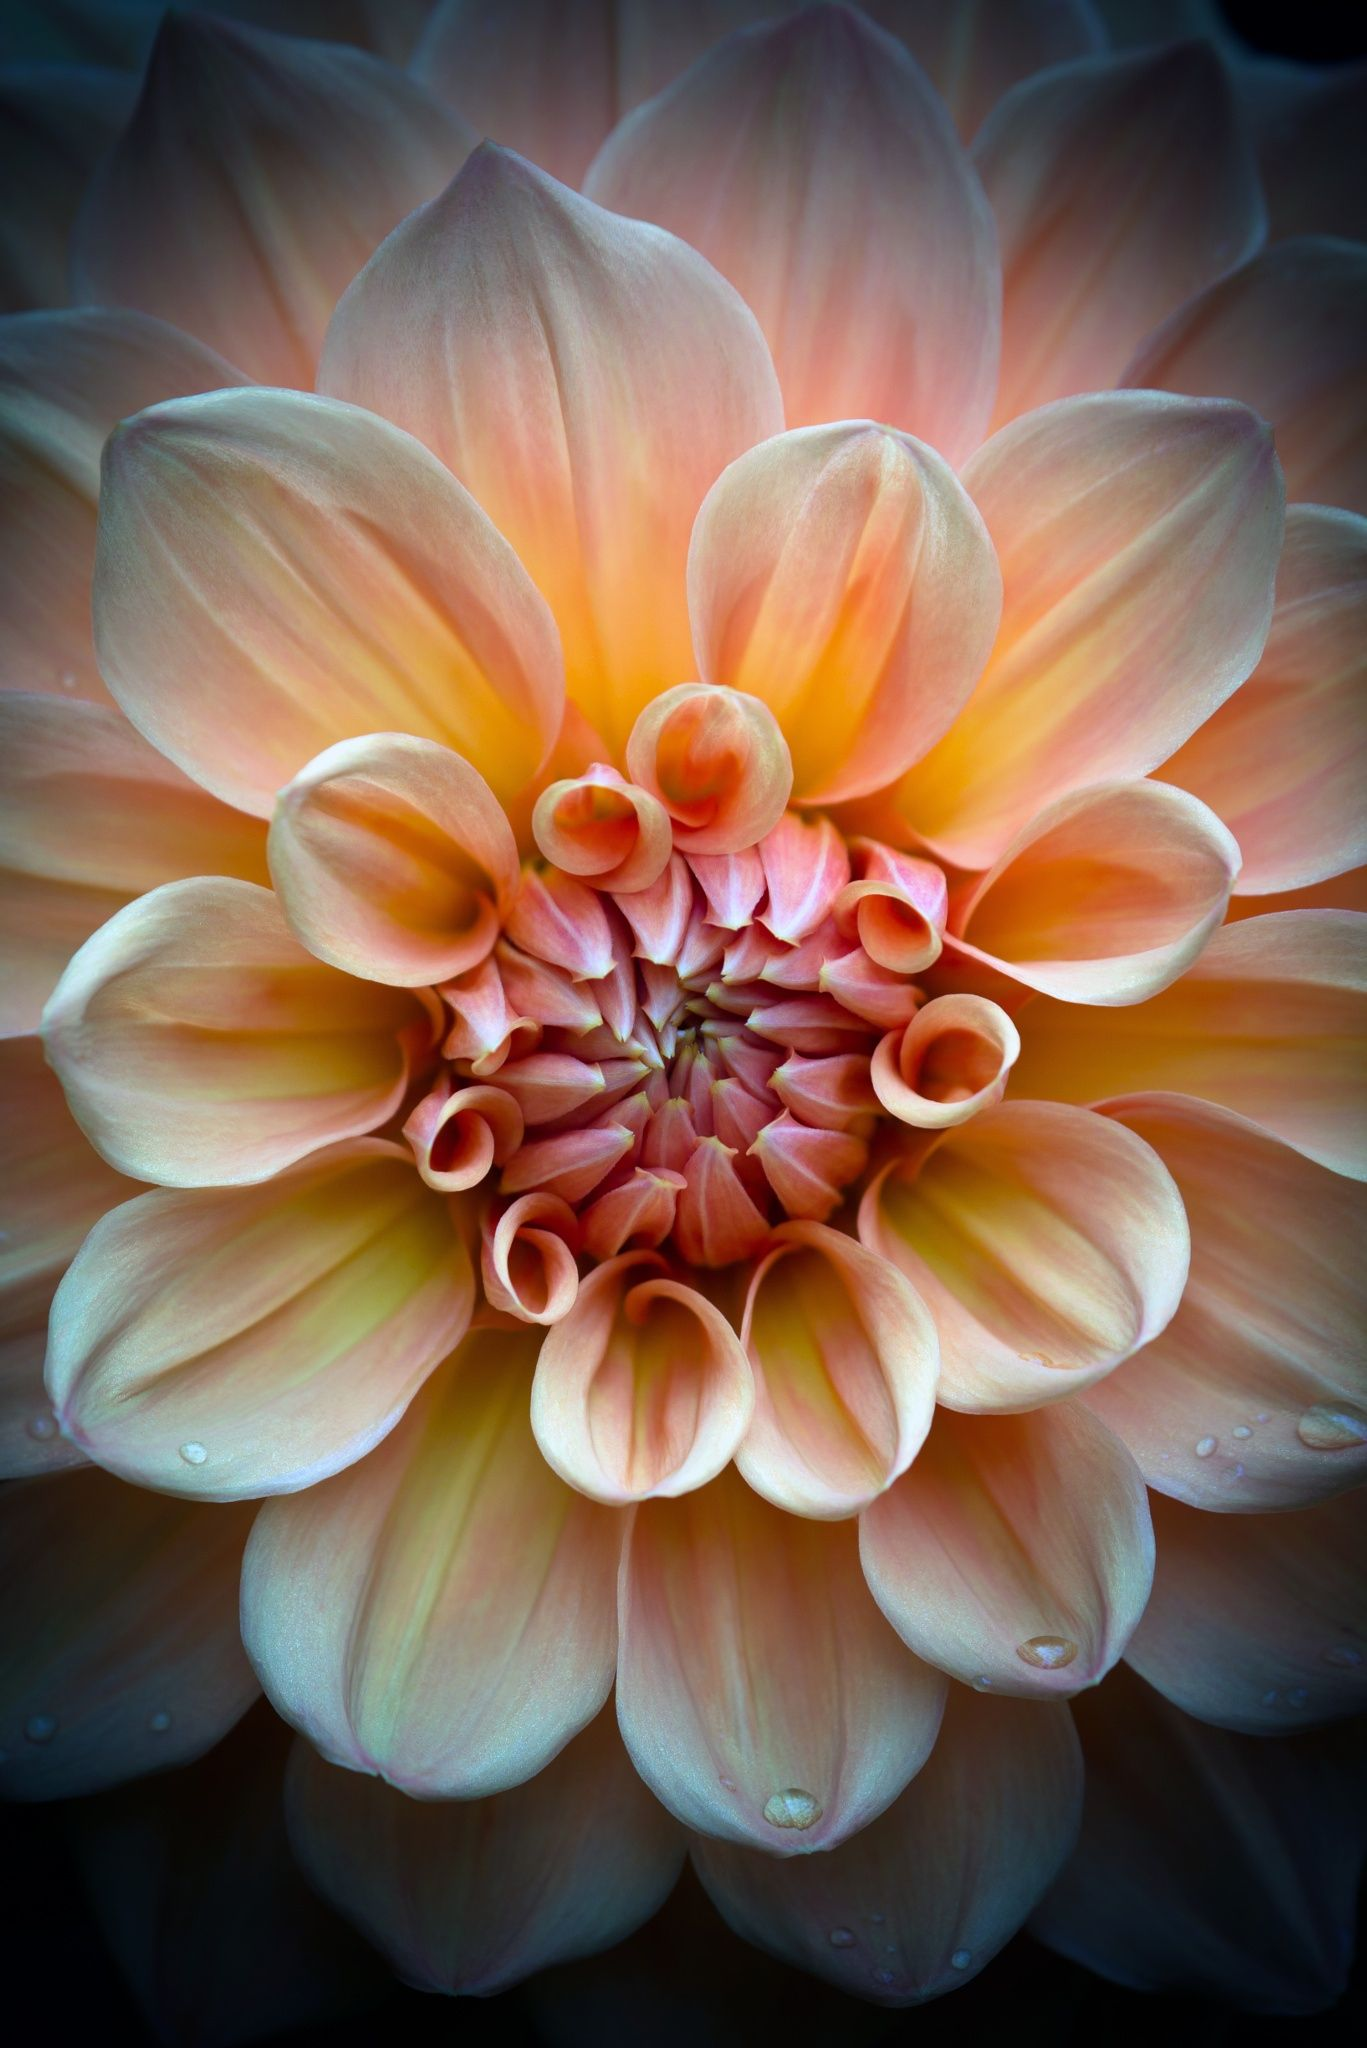 Dahlia By Roswitha Schacht From The Garden To The Table